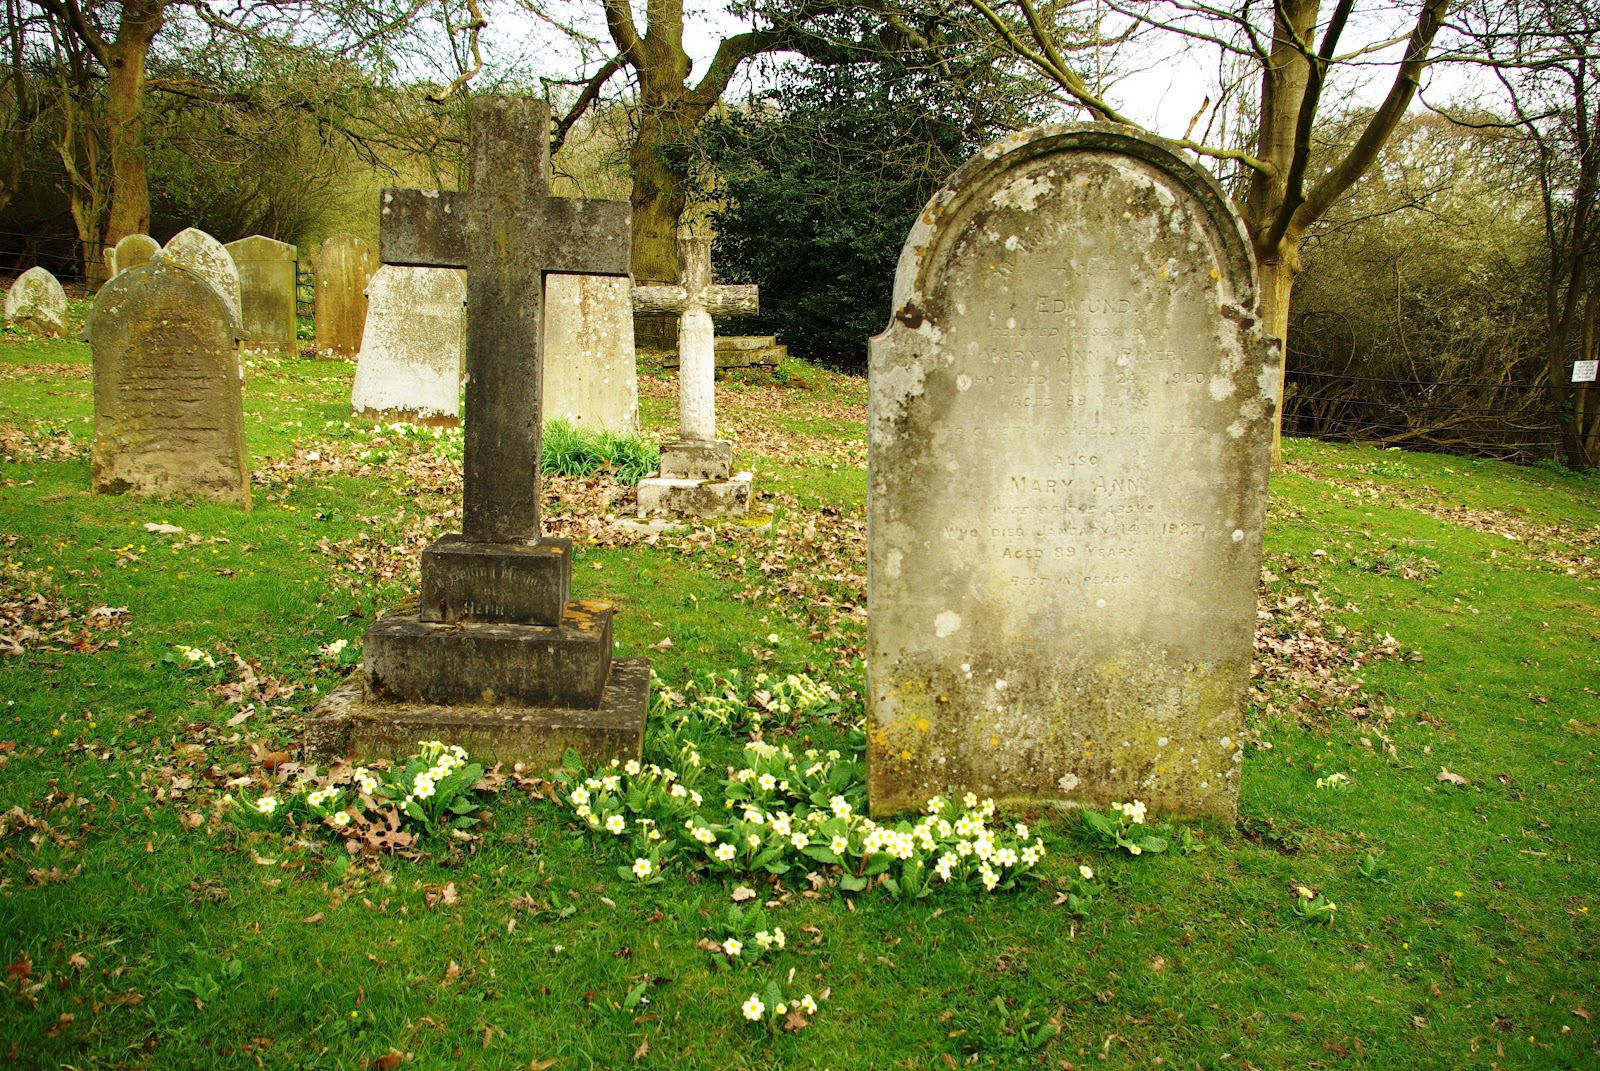 elegy written in a country churchyard essay topics Free essay: elegy written in a country chrchyard thomas gray's elegy laments the death of life in general while mourning long gone ancestors and exhibiting.